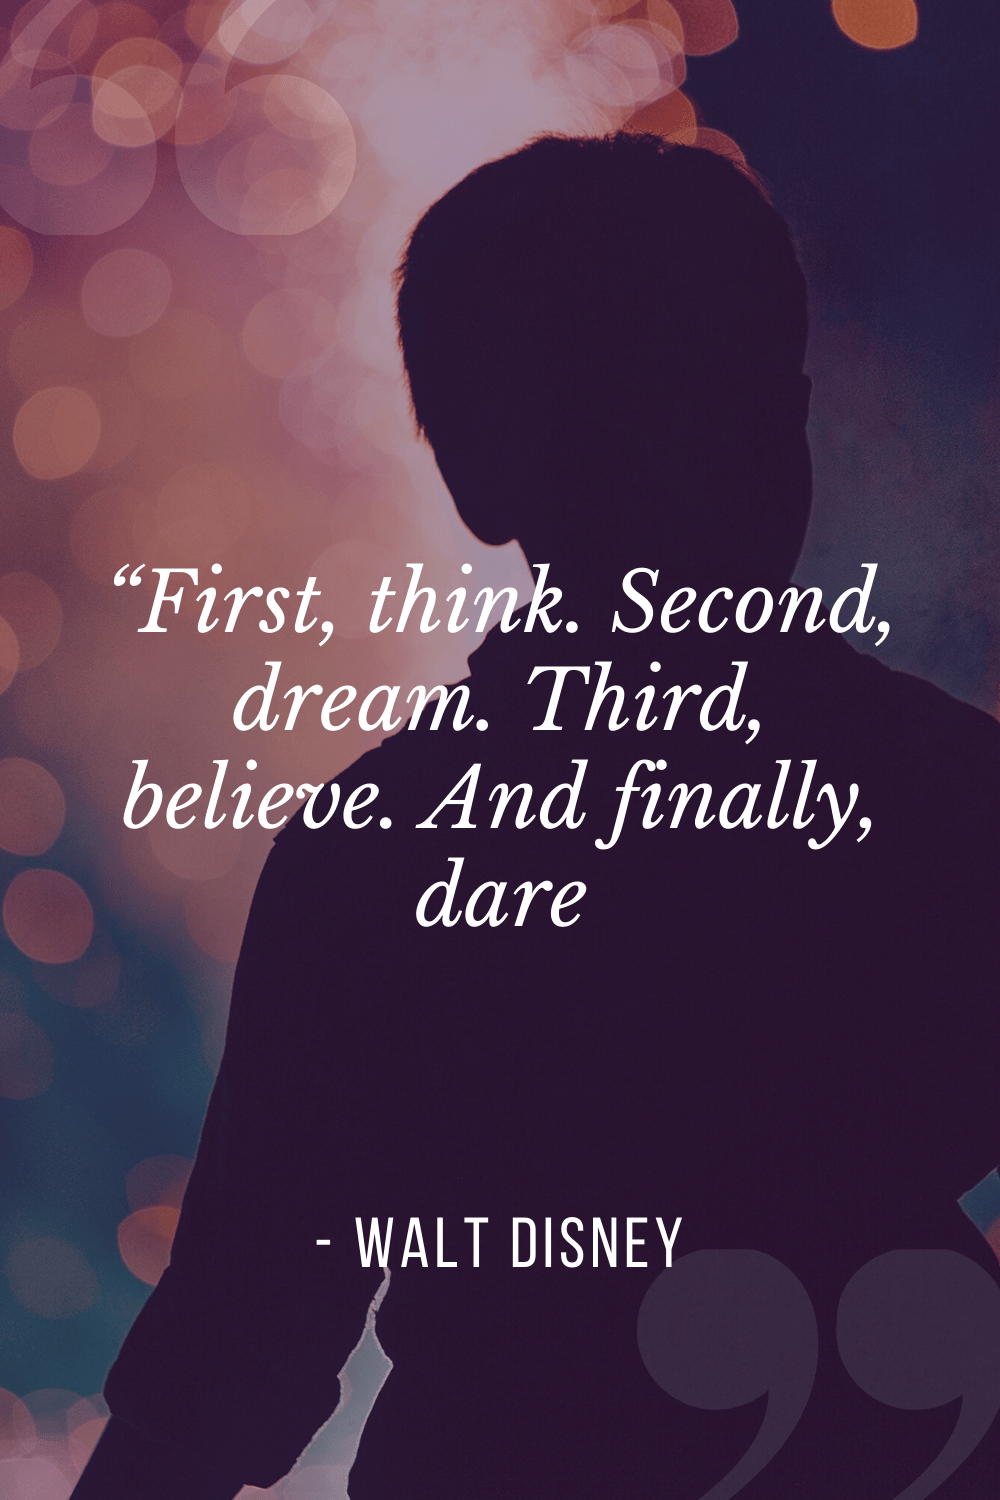 """First, think. Second, dream. Third, believe. And finally, dare"", Walt Disney"